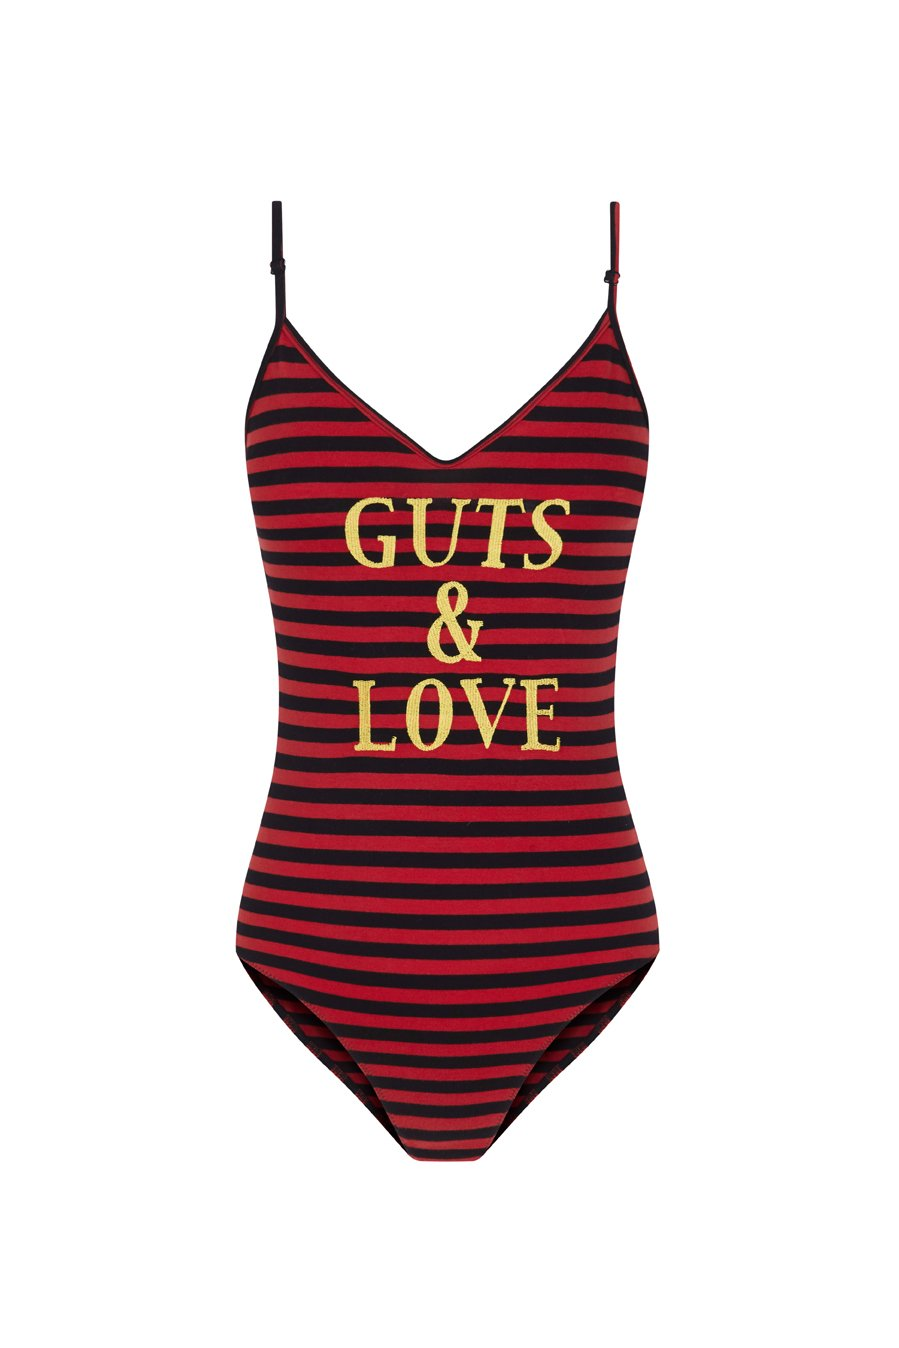 Guts and love. Silueta del body Guts and stripes de la colección primavera verano 2020 Underneath the star